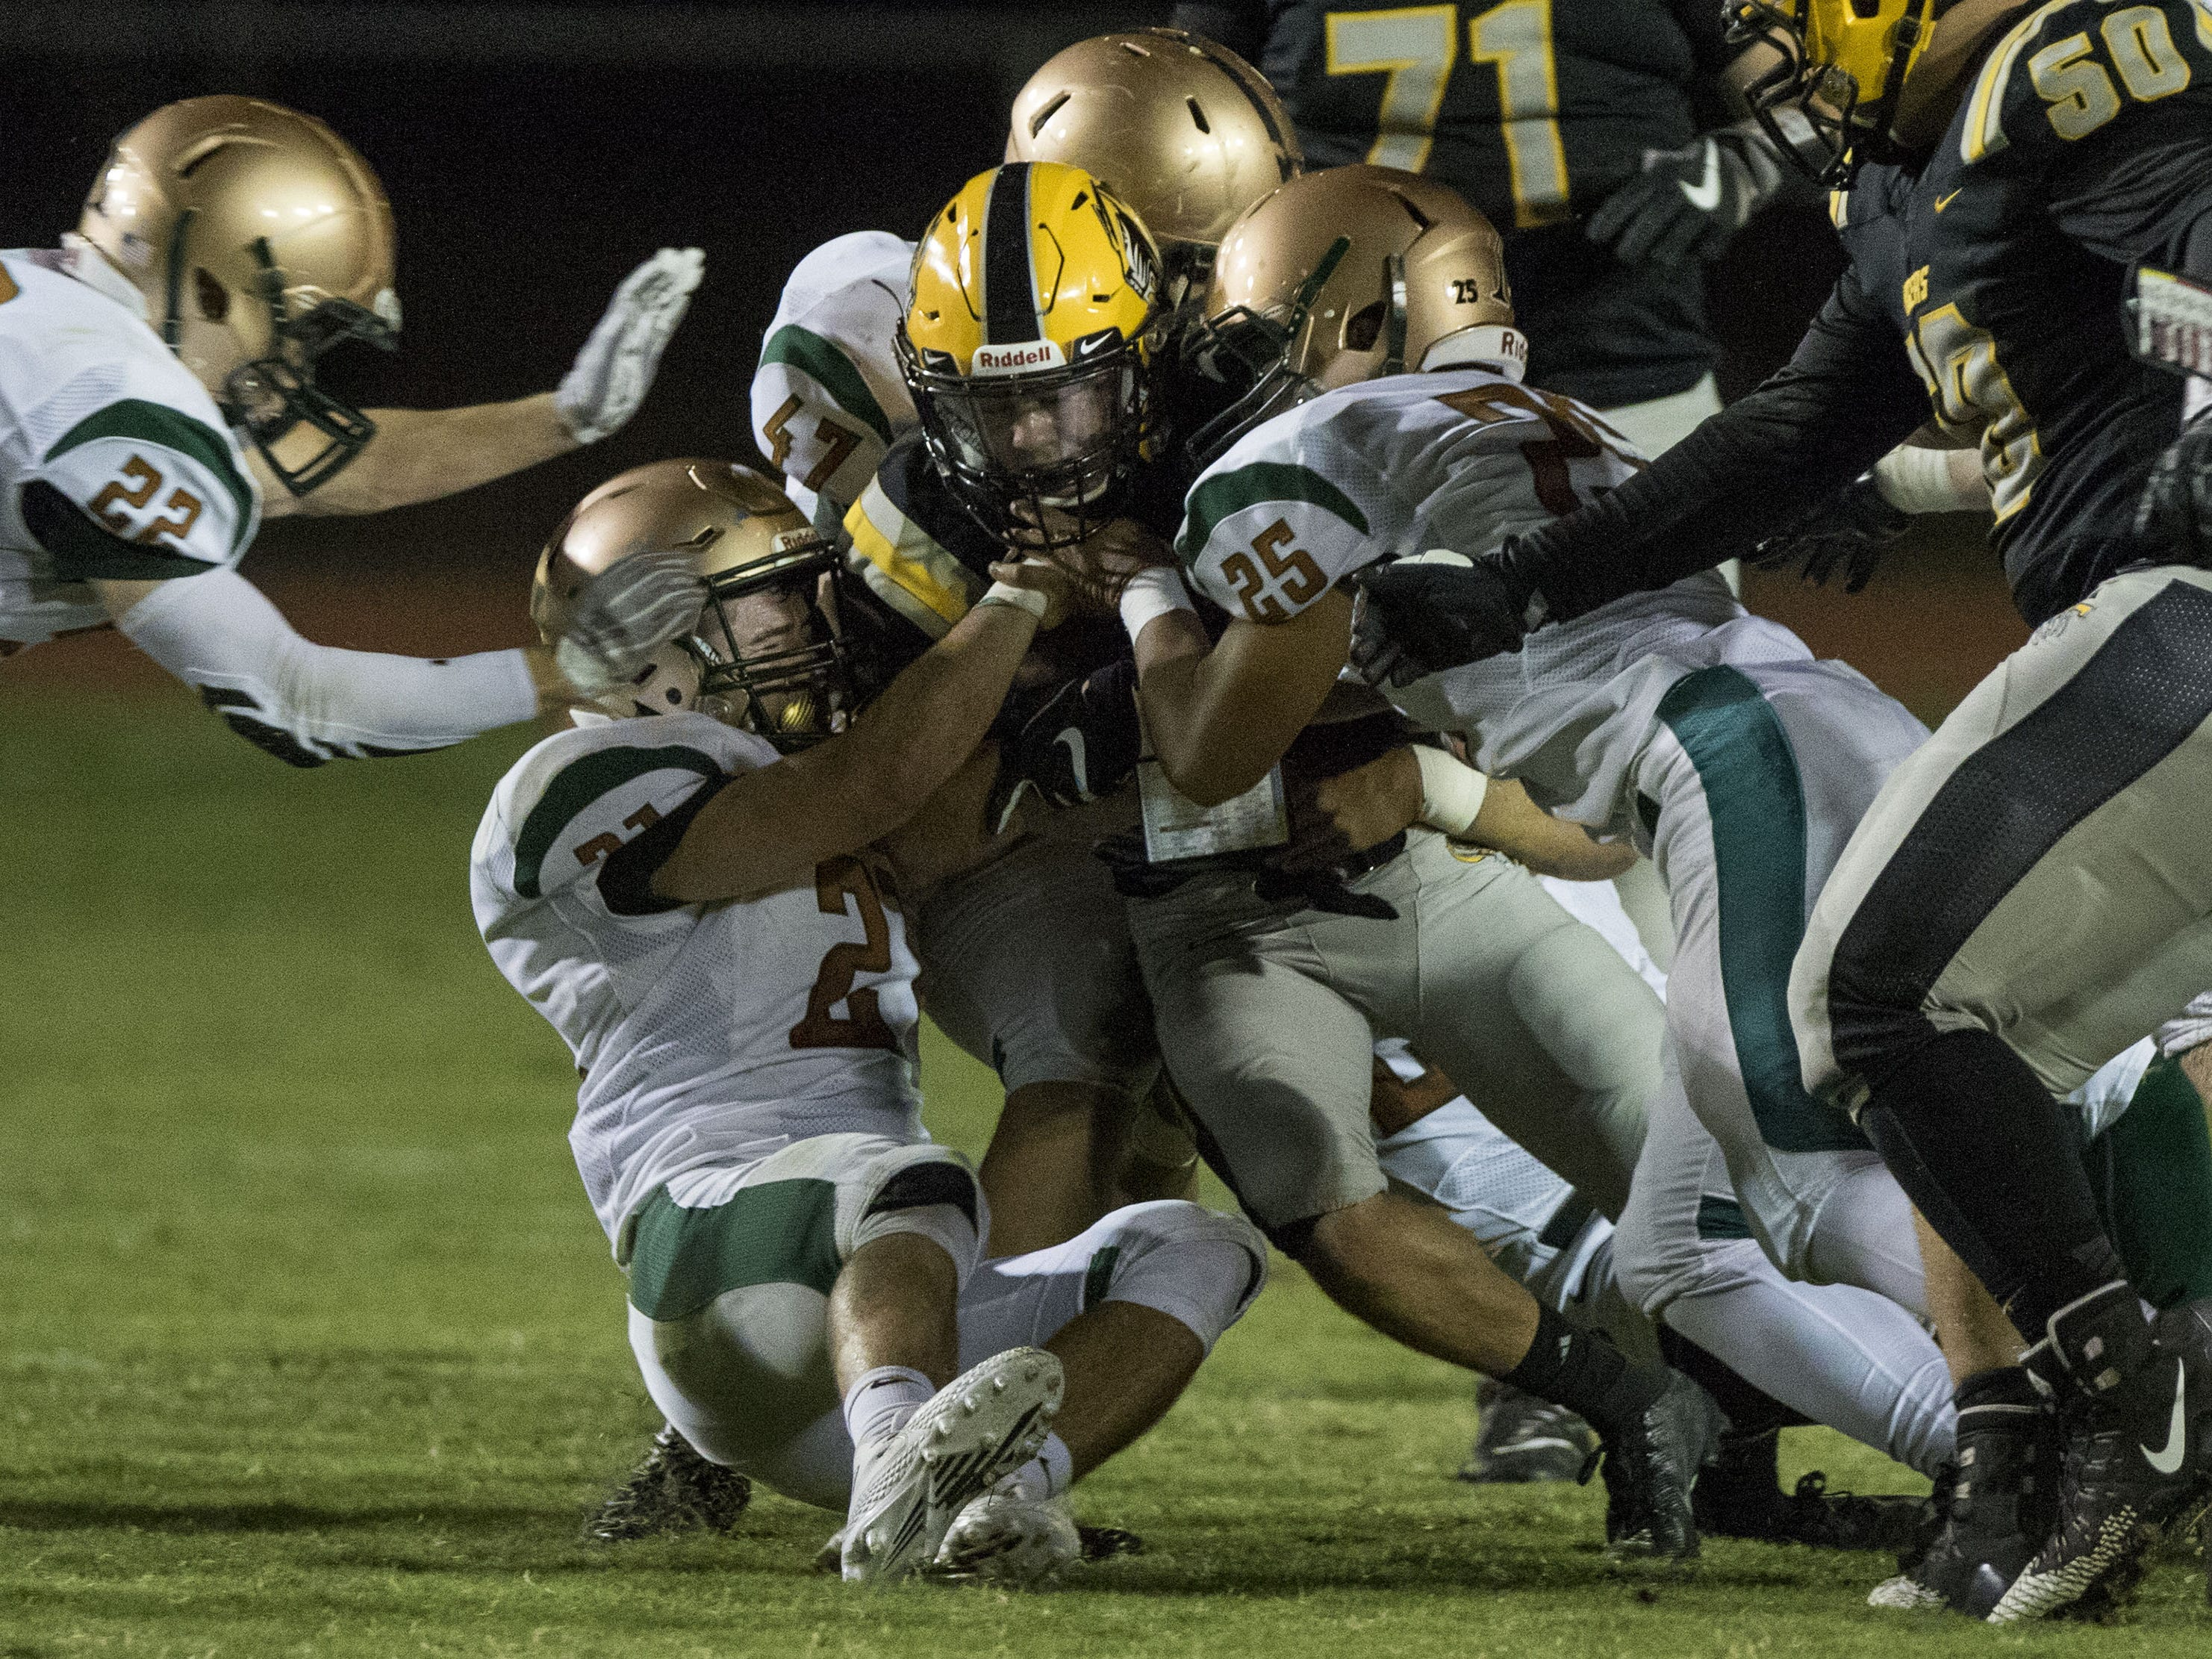 Campo Verde's defense smothers Gilbert's Anthony Elzy during their game in Gilbert Friday, Sept. 21, 2018. #azhsfb